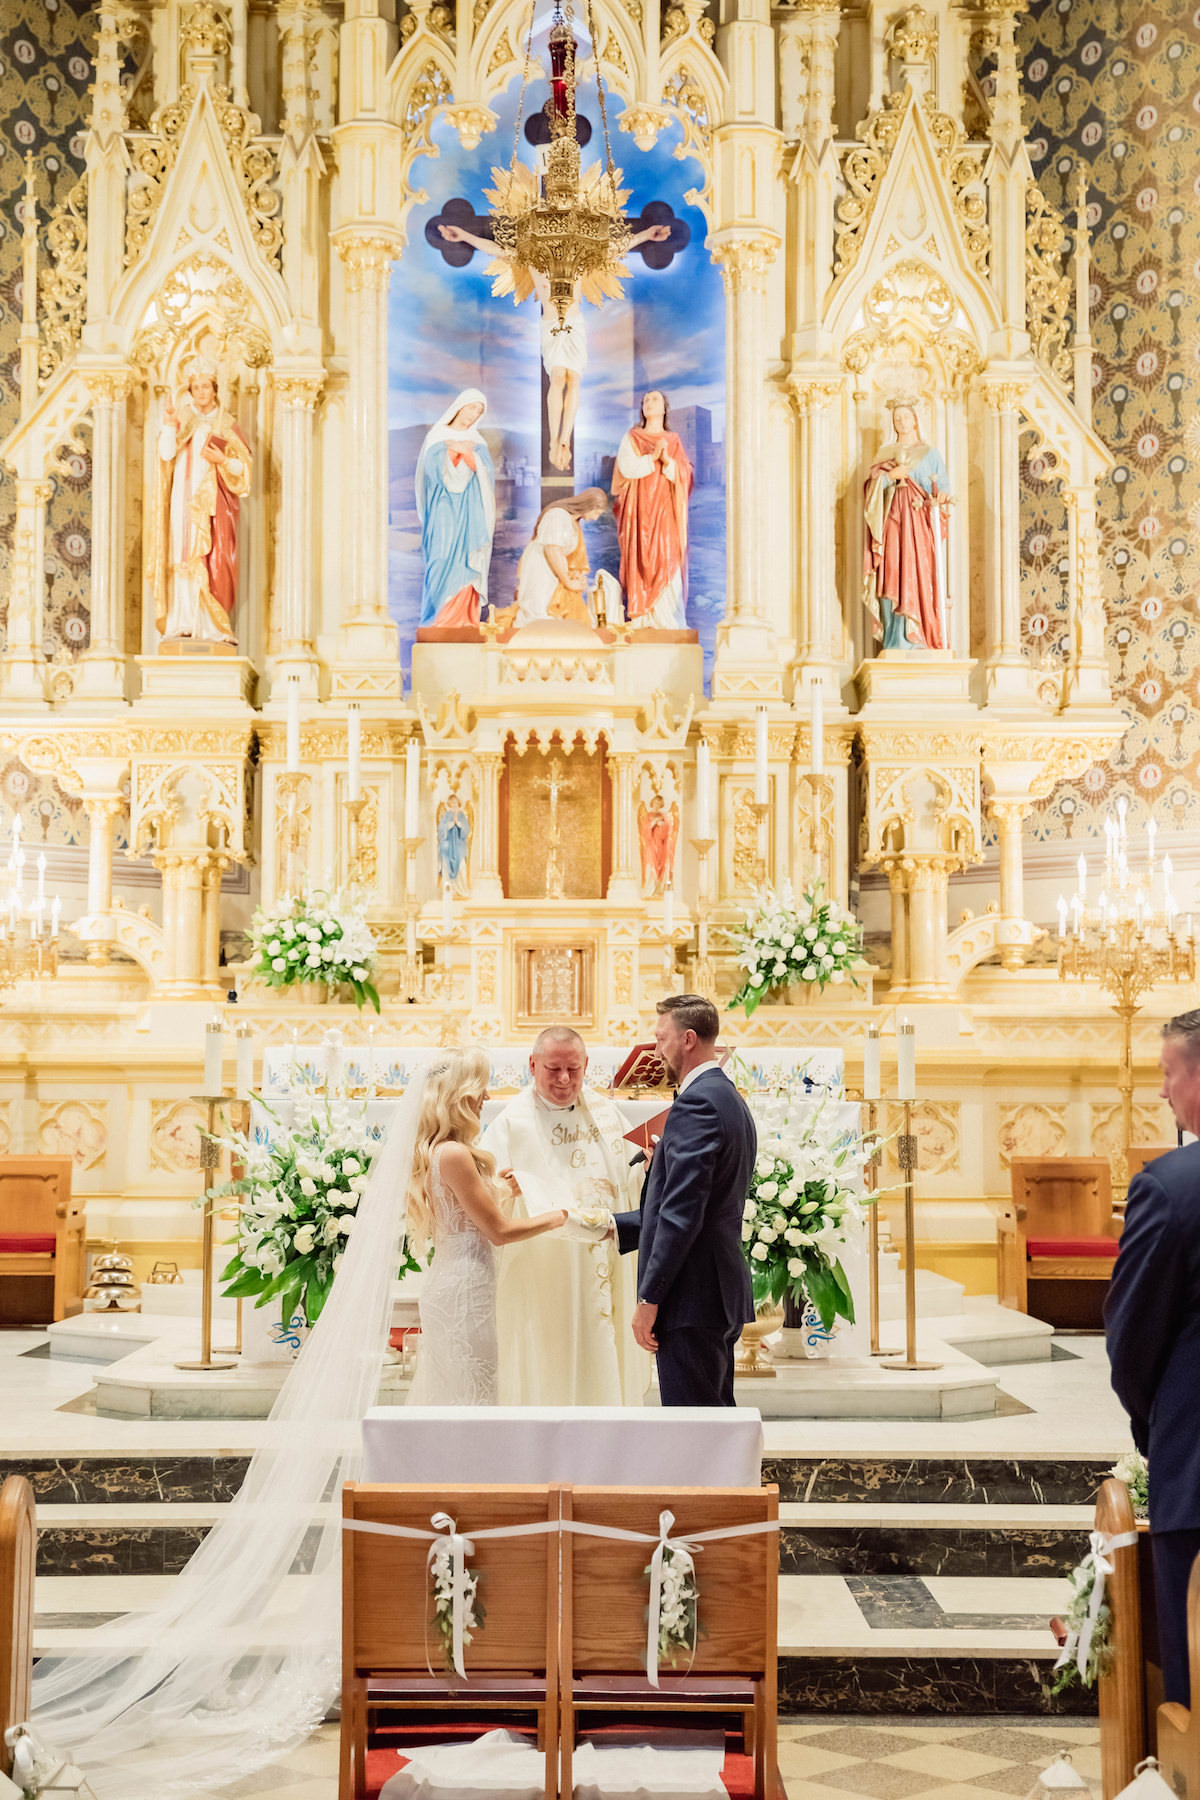 New York Church wedding ceremony - Photography: Charming Images